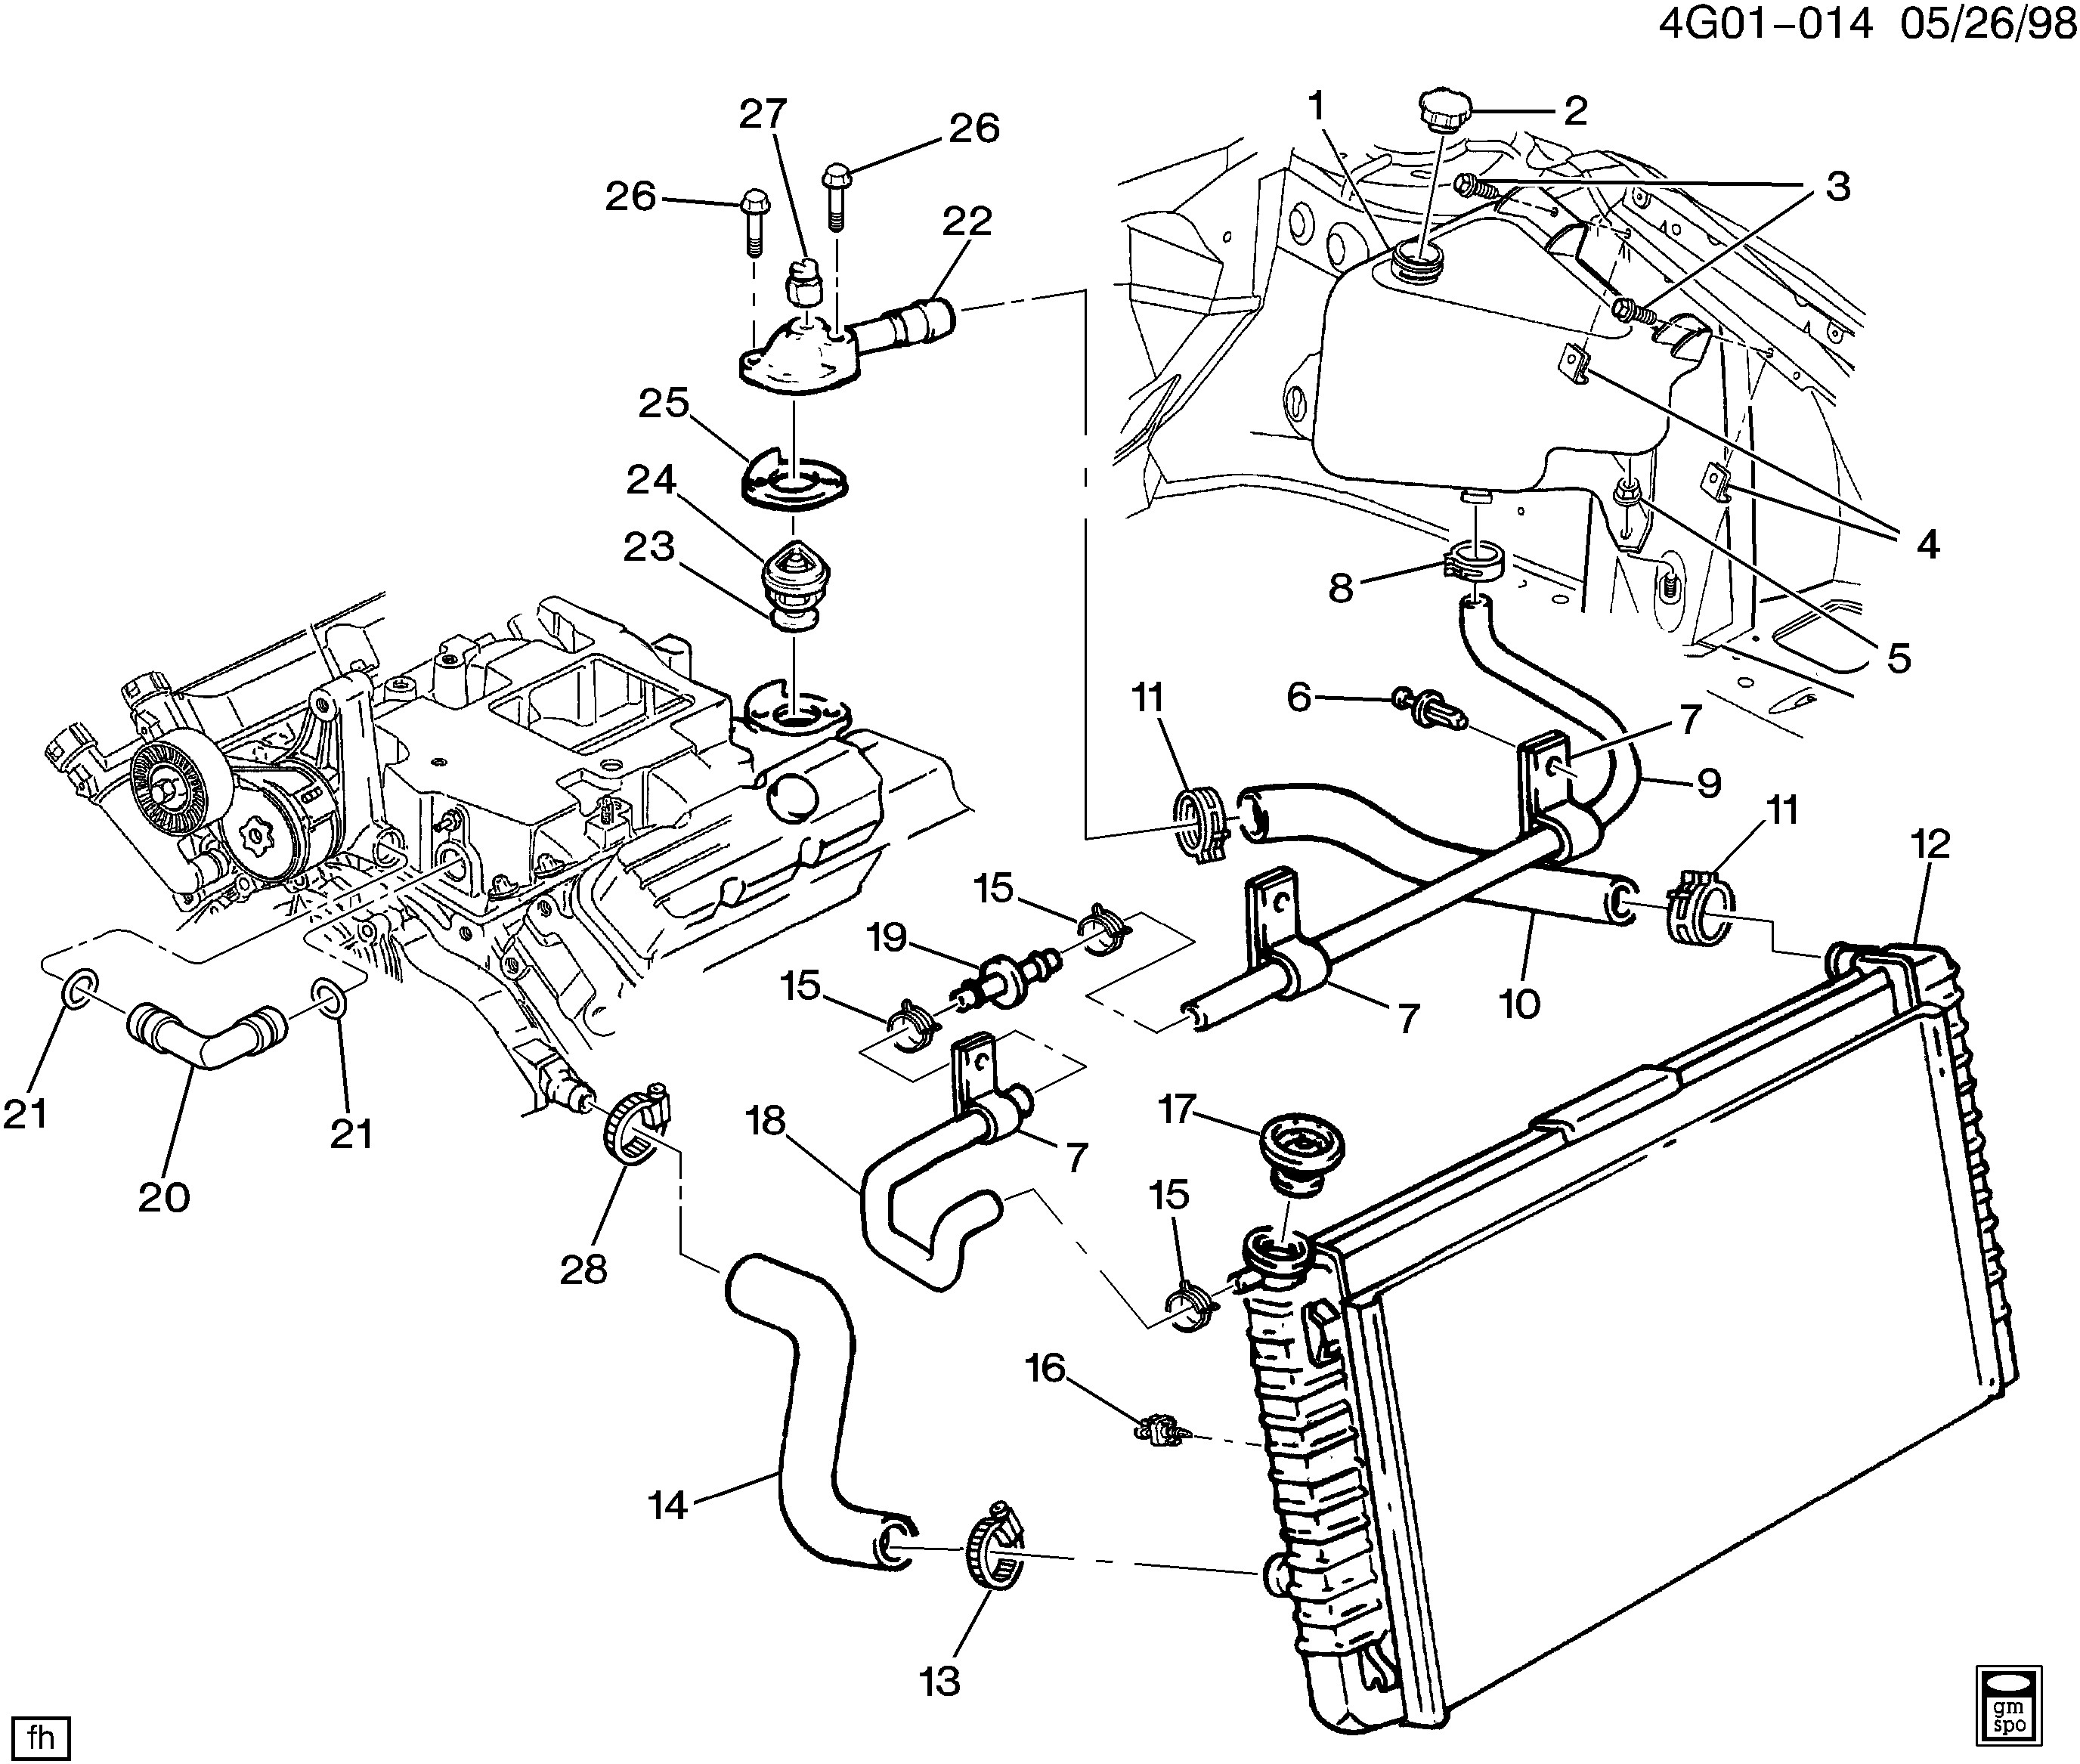 3 8 V6 Mustang Belt Diagram Wiring And Ebooks 2005 Engine Diagrams Rh 2 18 56 Jennifer Retzke De 62 Ford 38